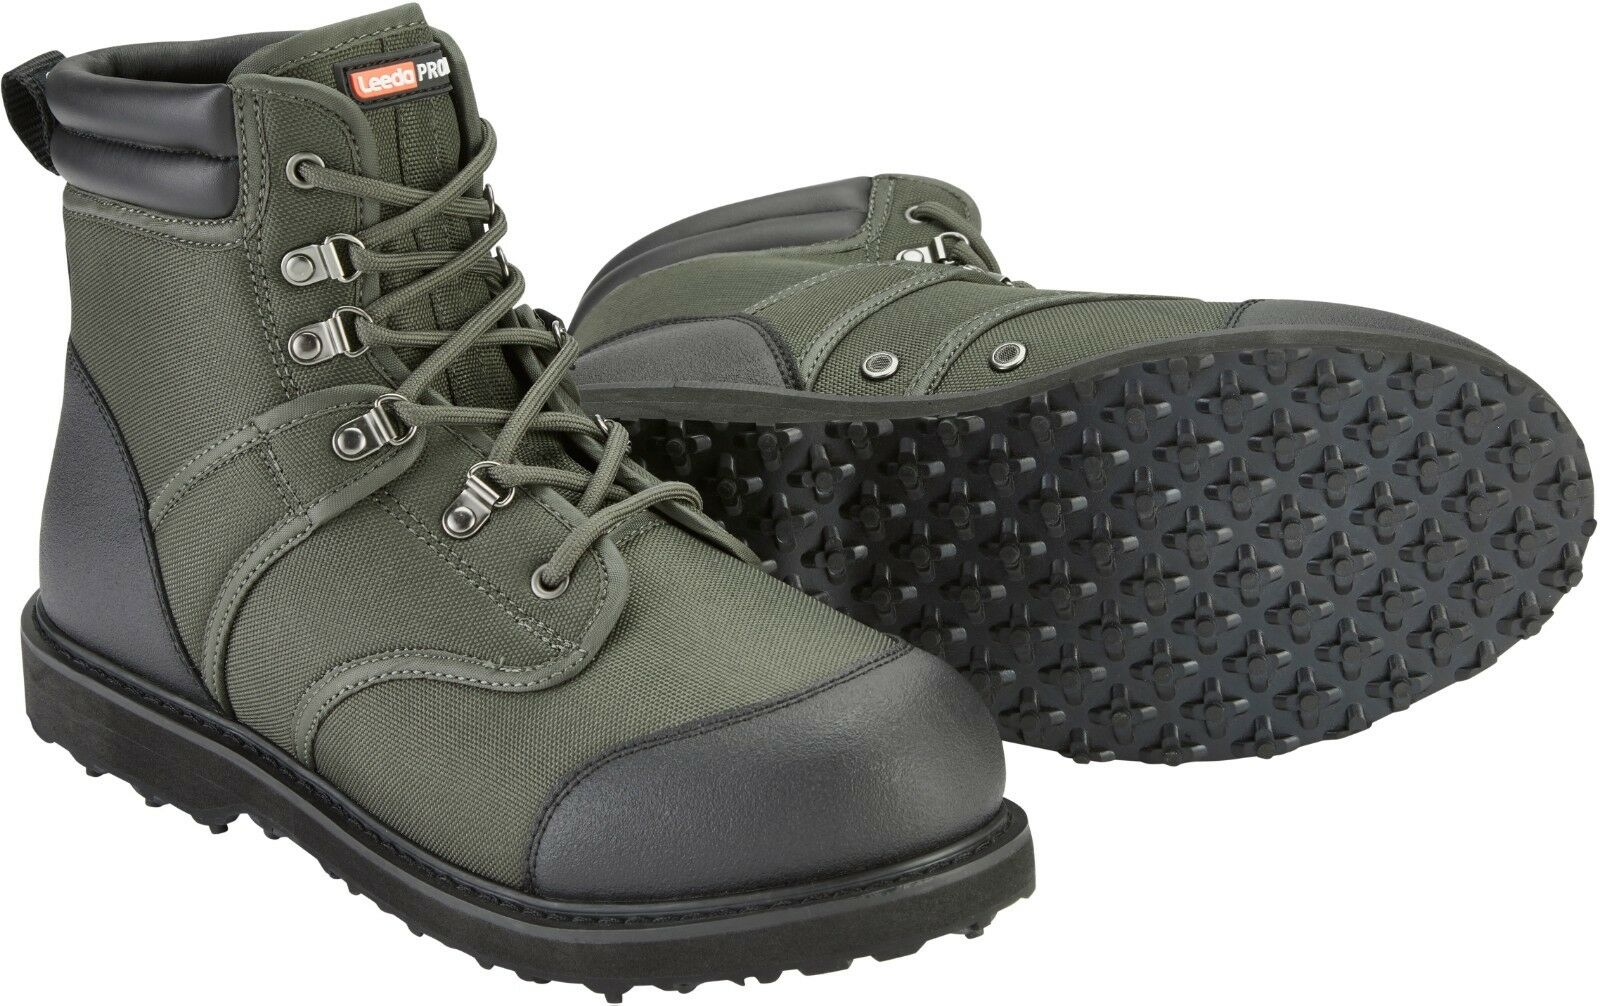 Fly Fishing Wading Boots, Profil Boots, Durable,Reinforced Toe, Ankle Support